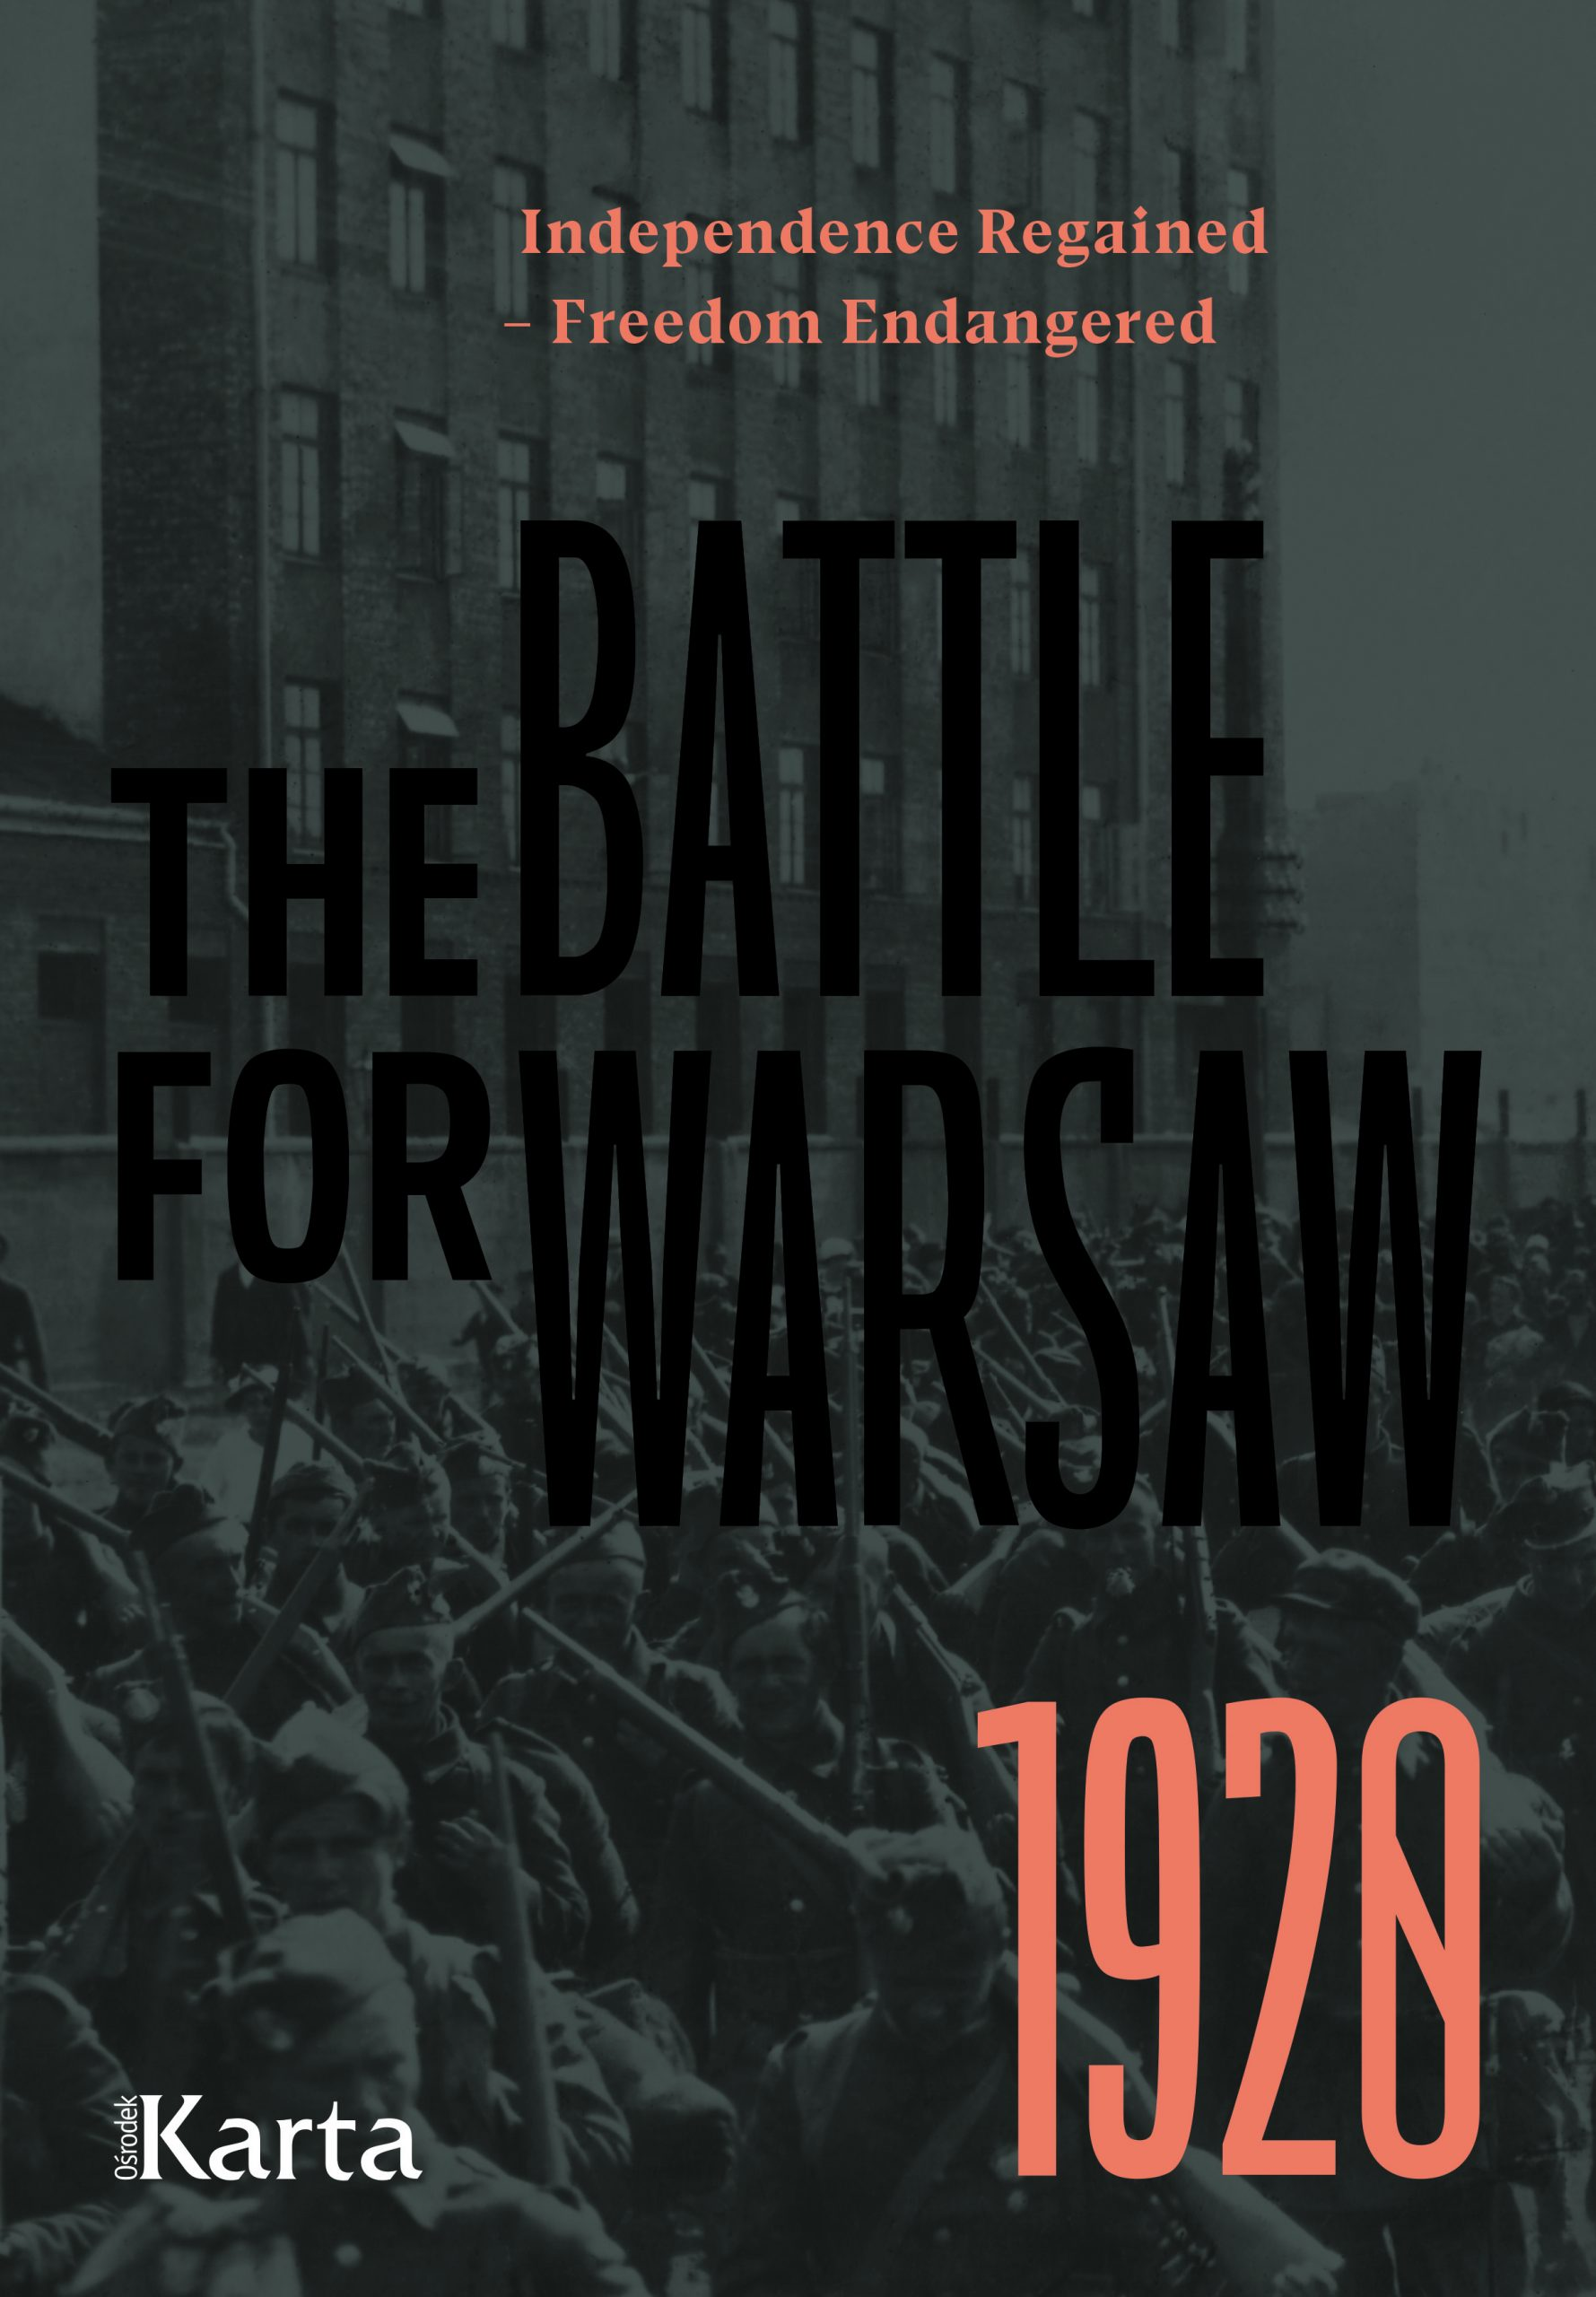 The Battle for Warsaw 1920